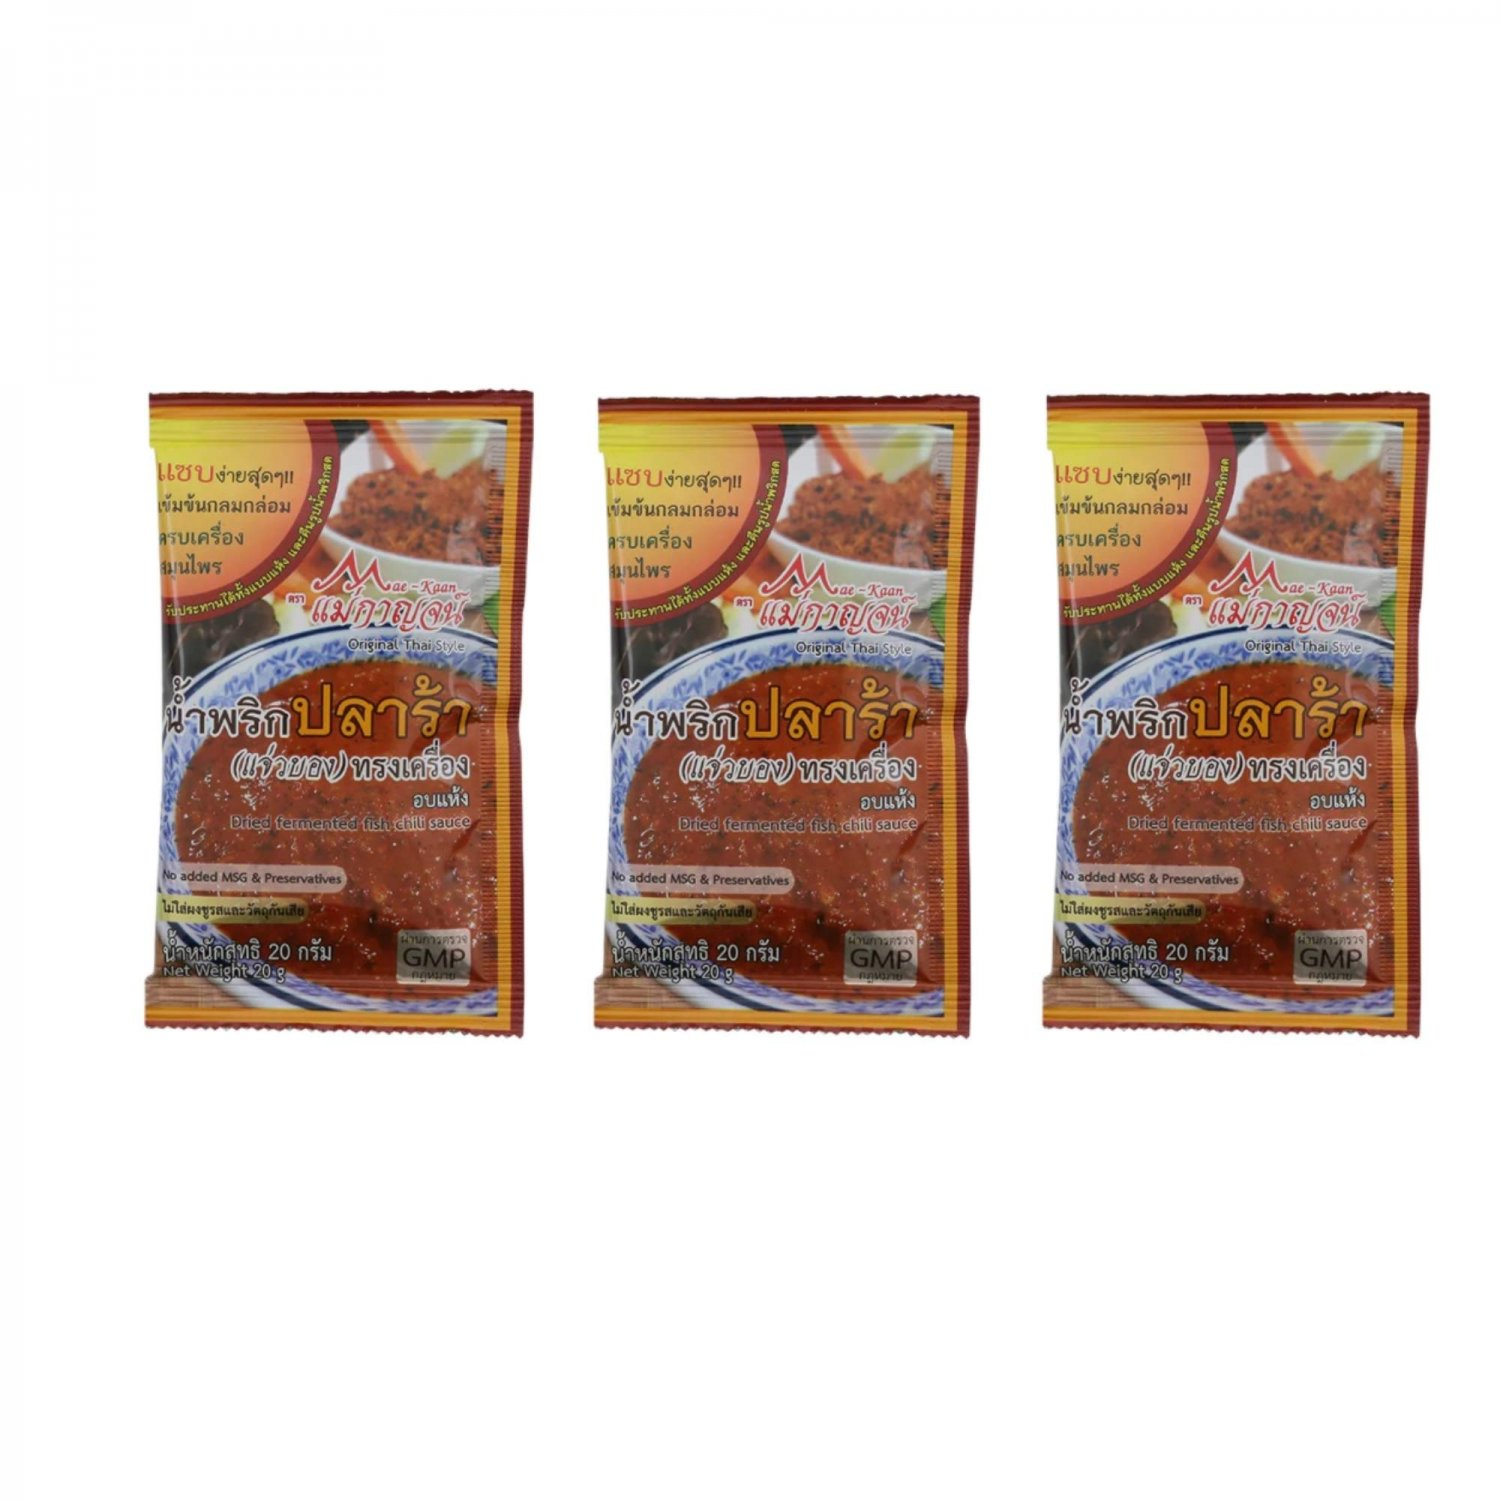 Dried Fermented Fish Chili Sauce 20g Pack of 3 No MSG  NO Pr